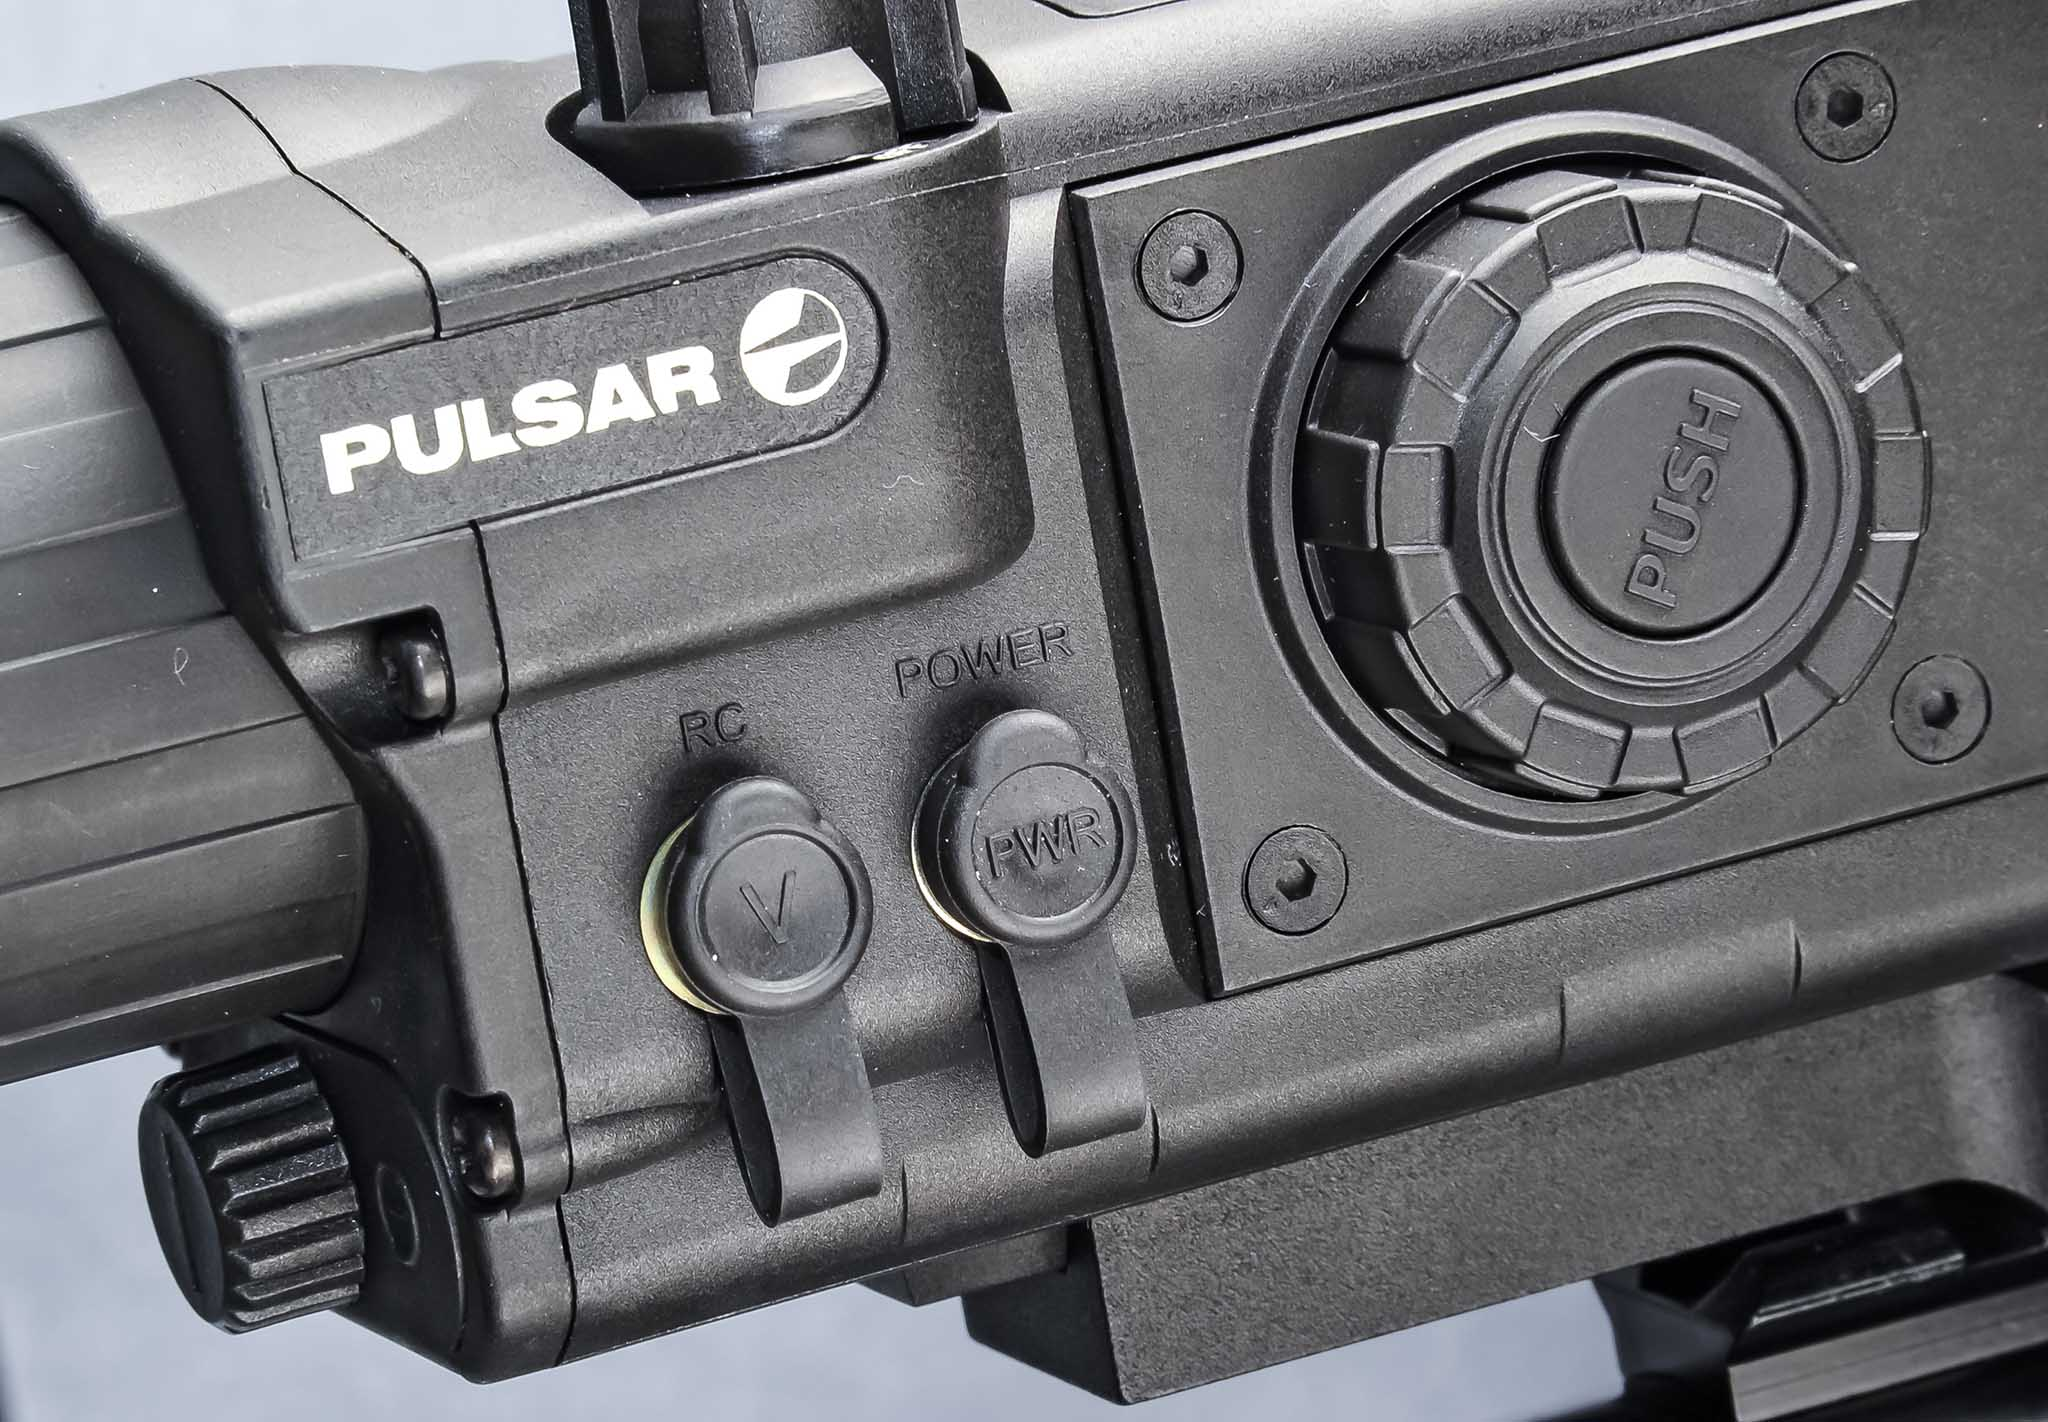 Pulsar digisight n und n im test all hunters